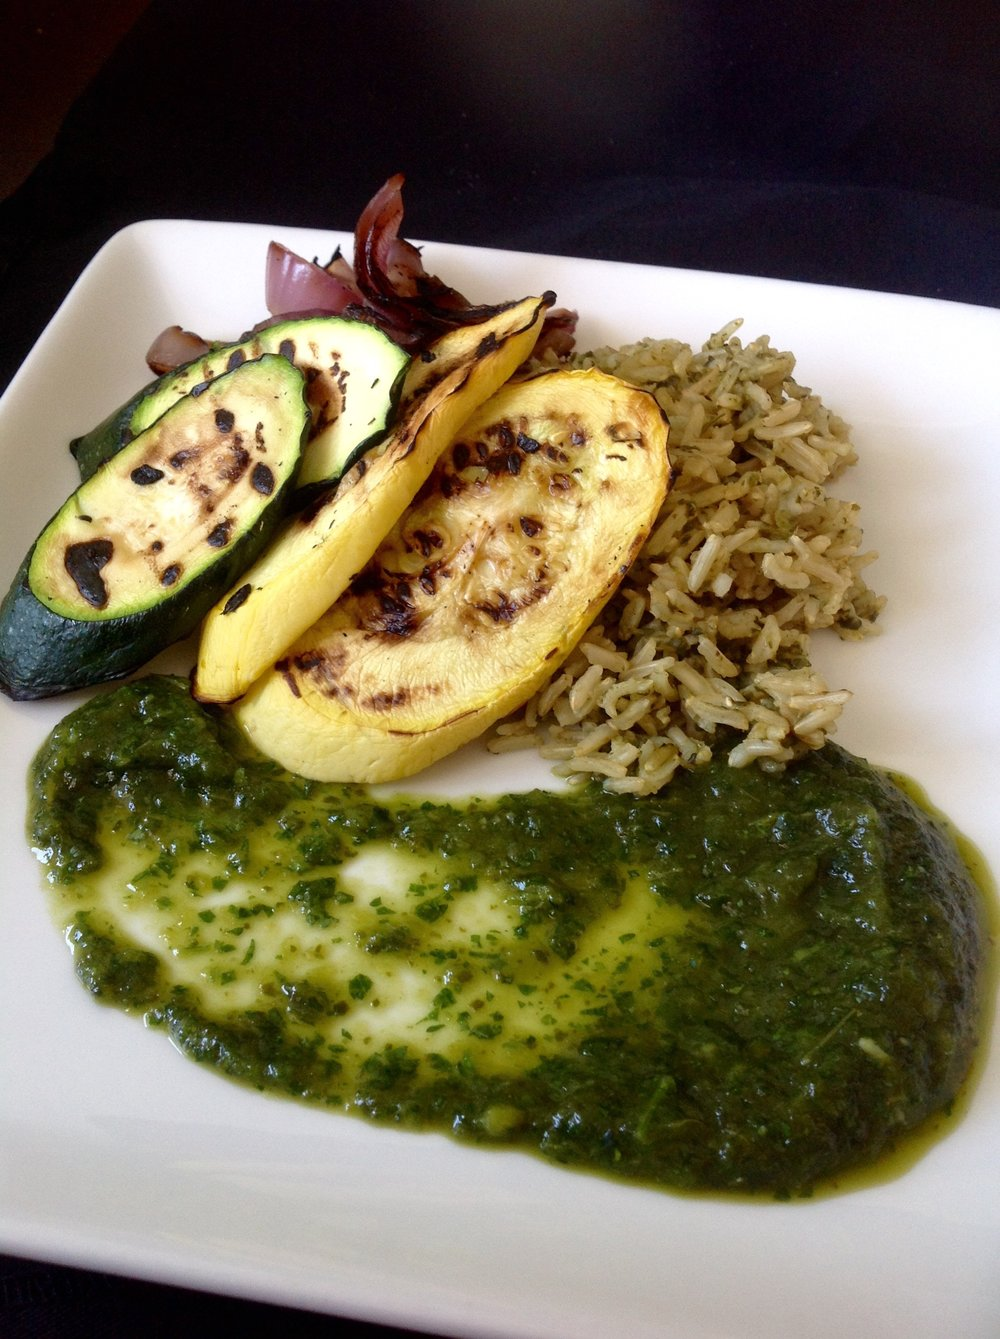 Mexican Green Rice - Poblano Arroz Verde with Grilled Vegetables, Healthy, Plant-Based, Oil-Free, Spicy Gluten-Free Vegan Recipe